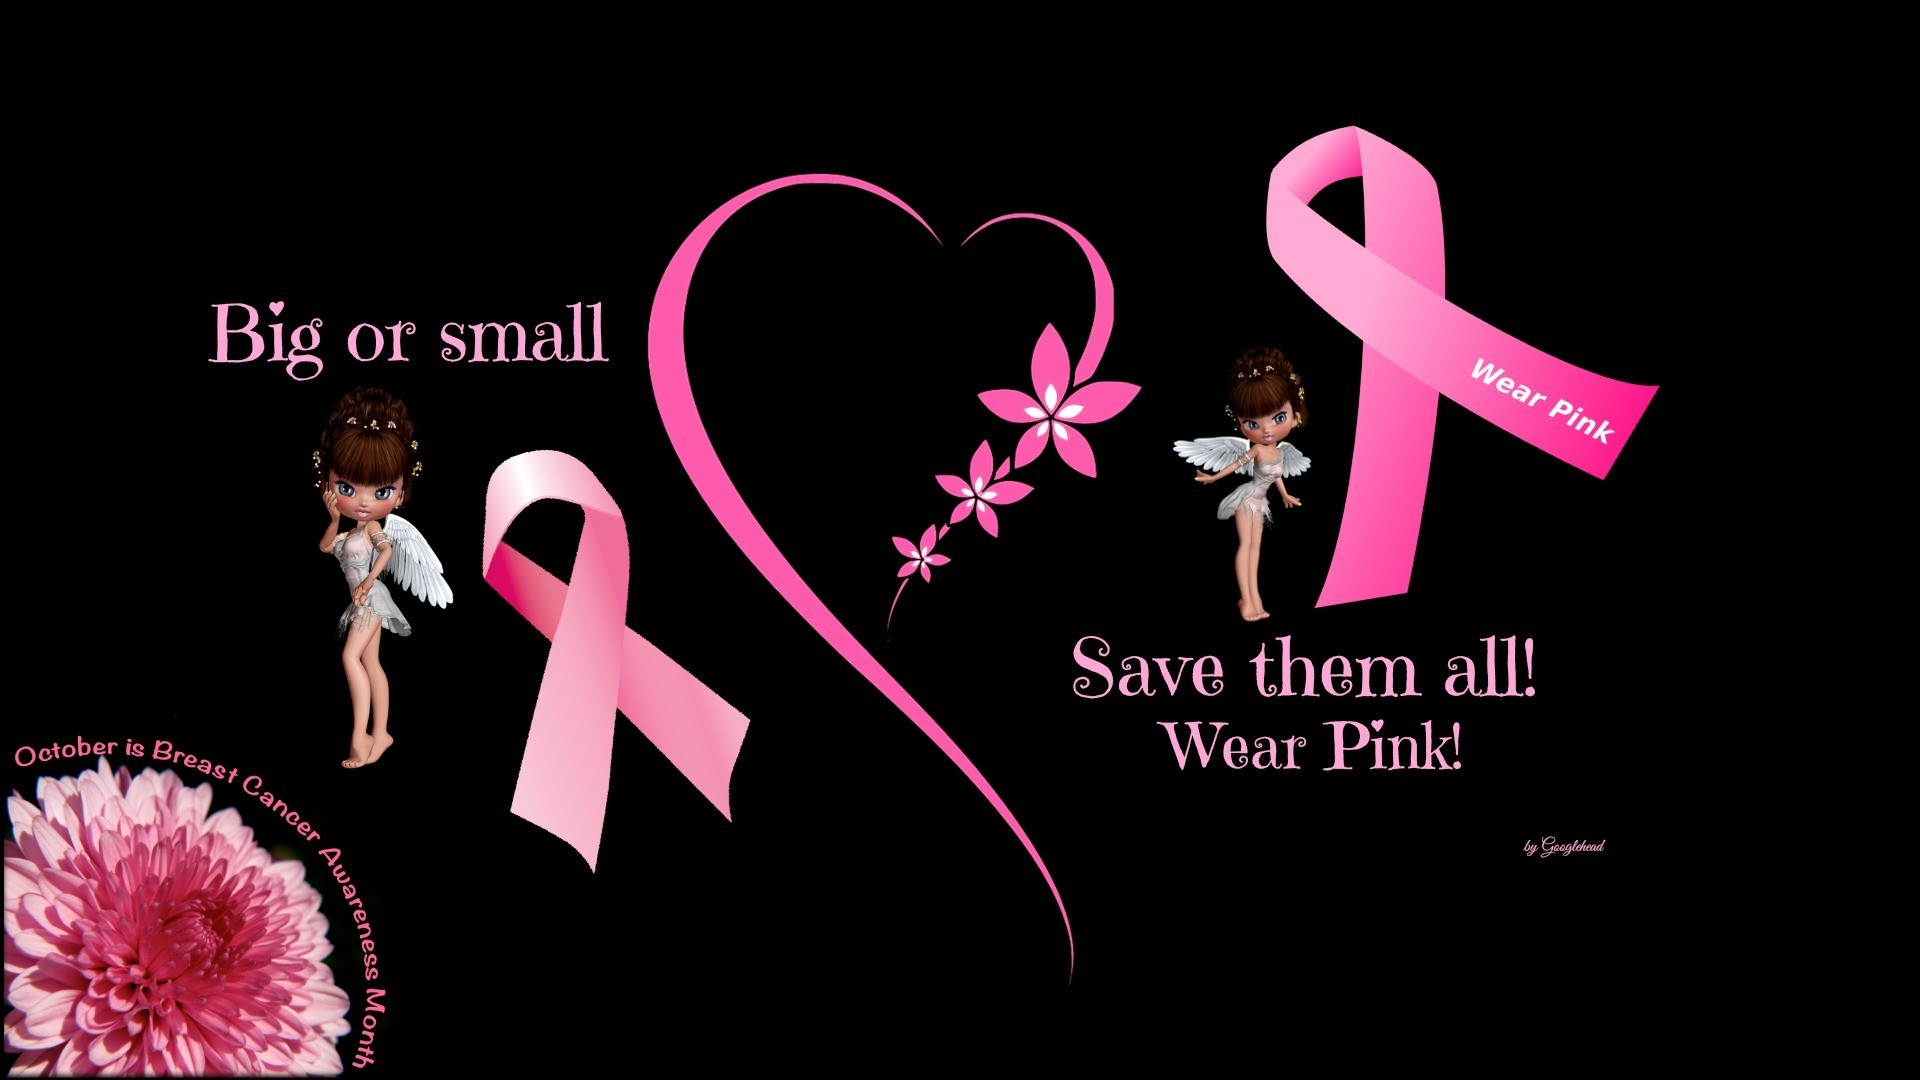 Breast Cancer Desktop Wallpaper HD Wallpapers Download Free Images Wallpaper [1000image.com]